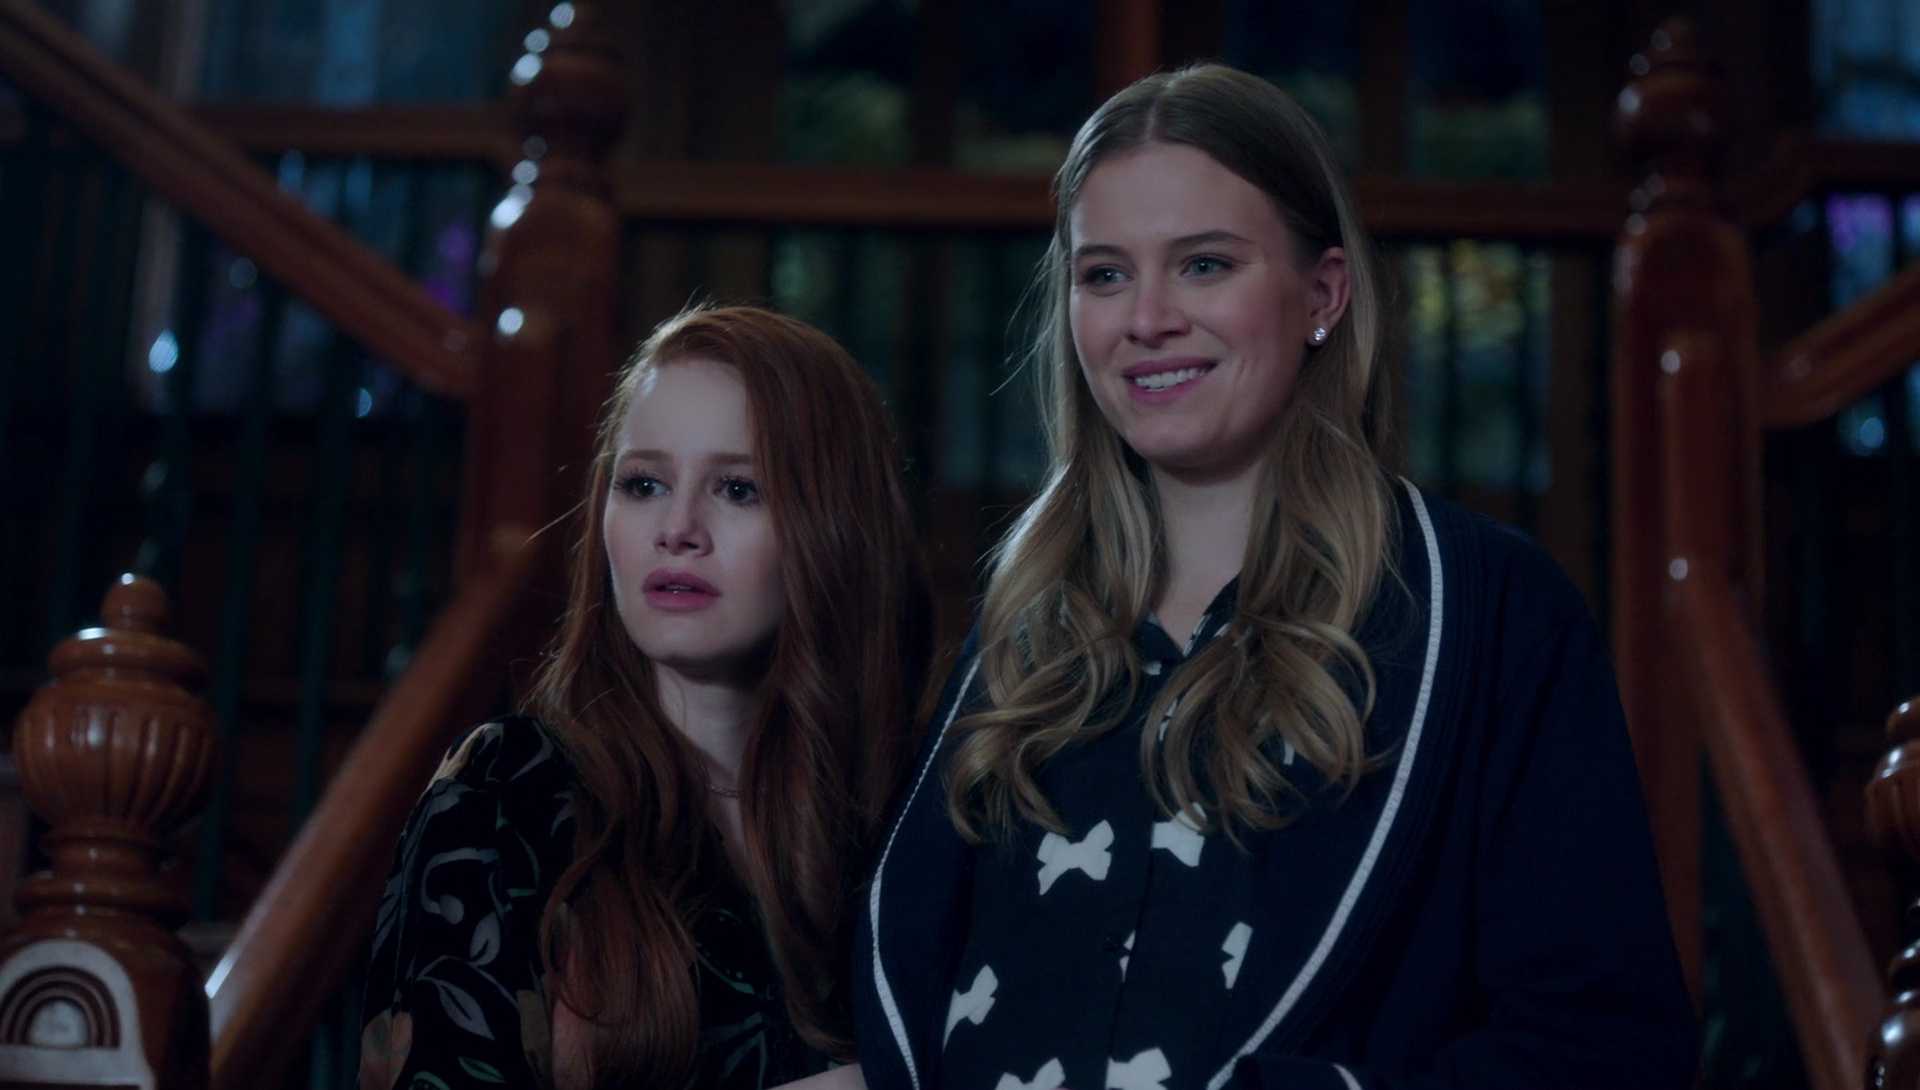 Cheryl And Polly Riverdale Wiki Fandom Powered By Wikia